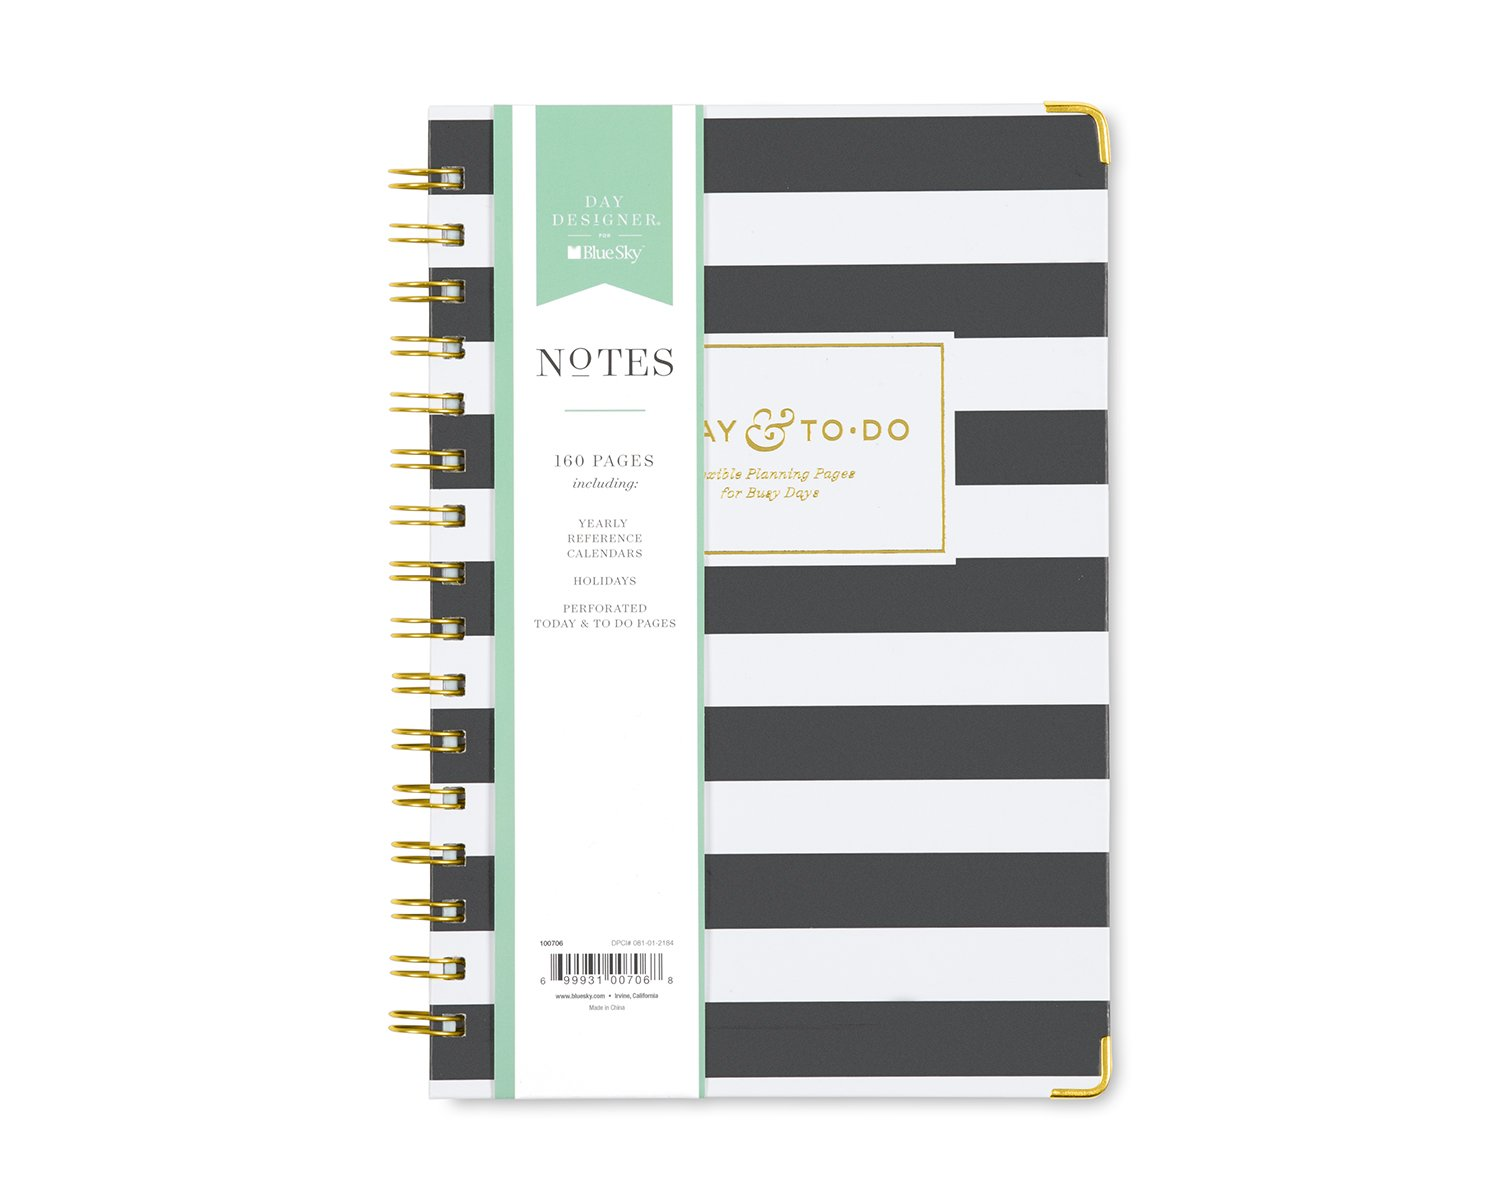 Day Designer for Blue Sky Today To-Do Notebook, 160 Ruled Pages, Twin-Wire Binding, Hardcover, 5.75'' x 8.5'', Black Stripe